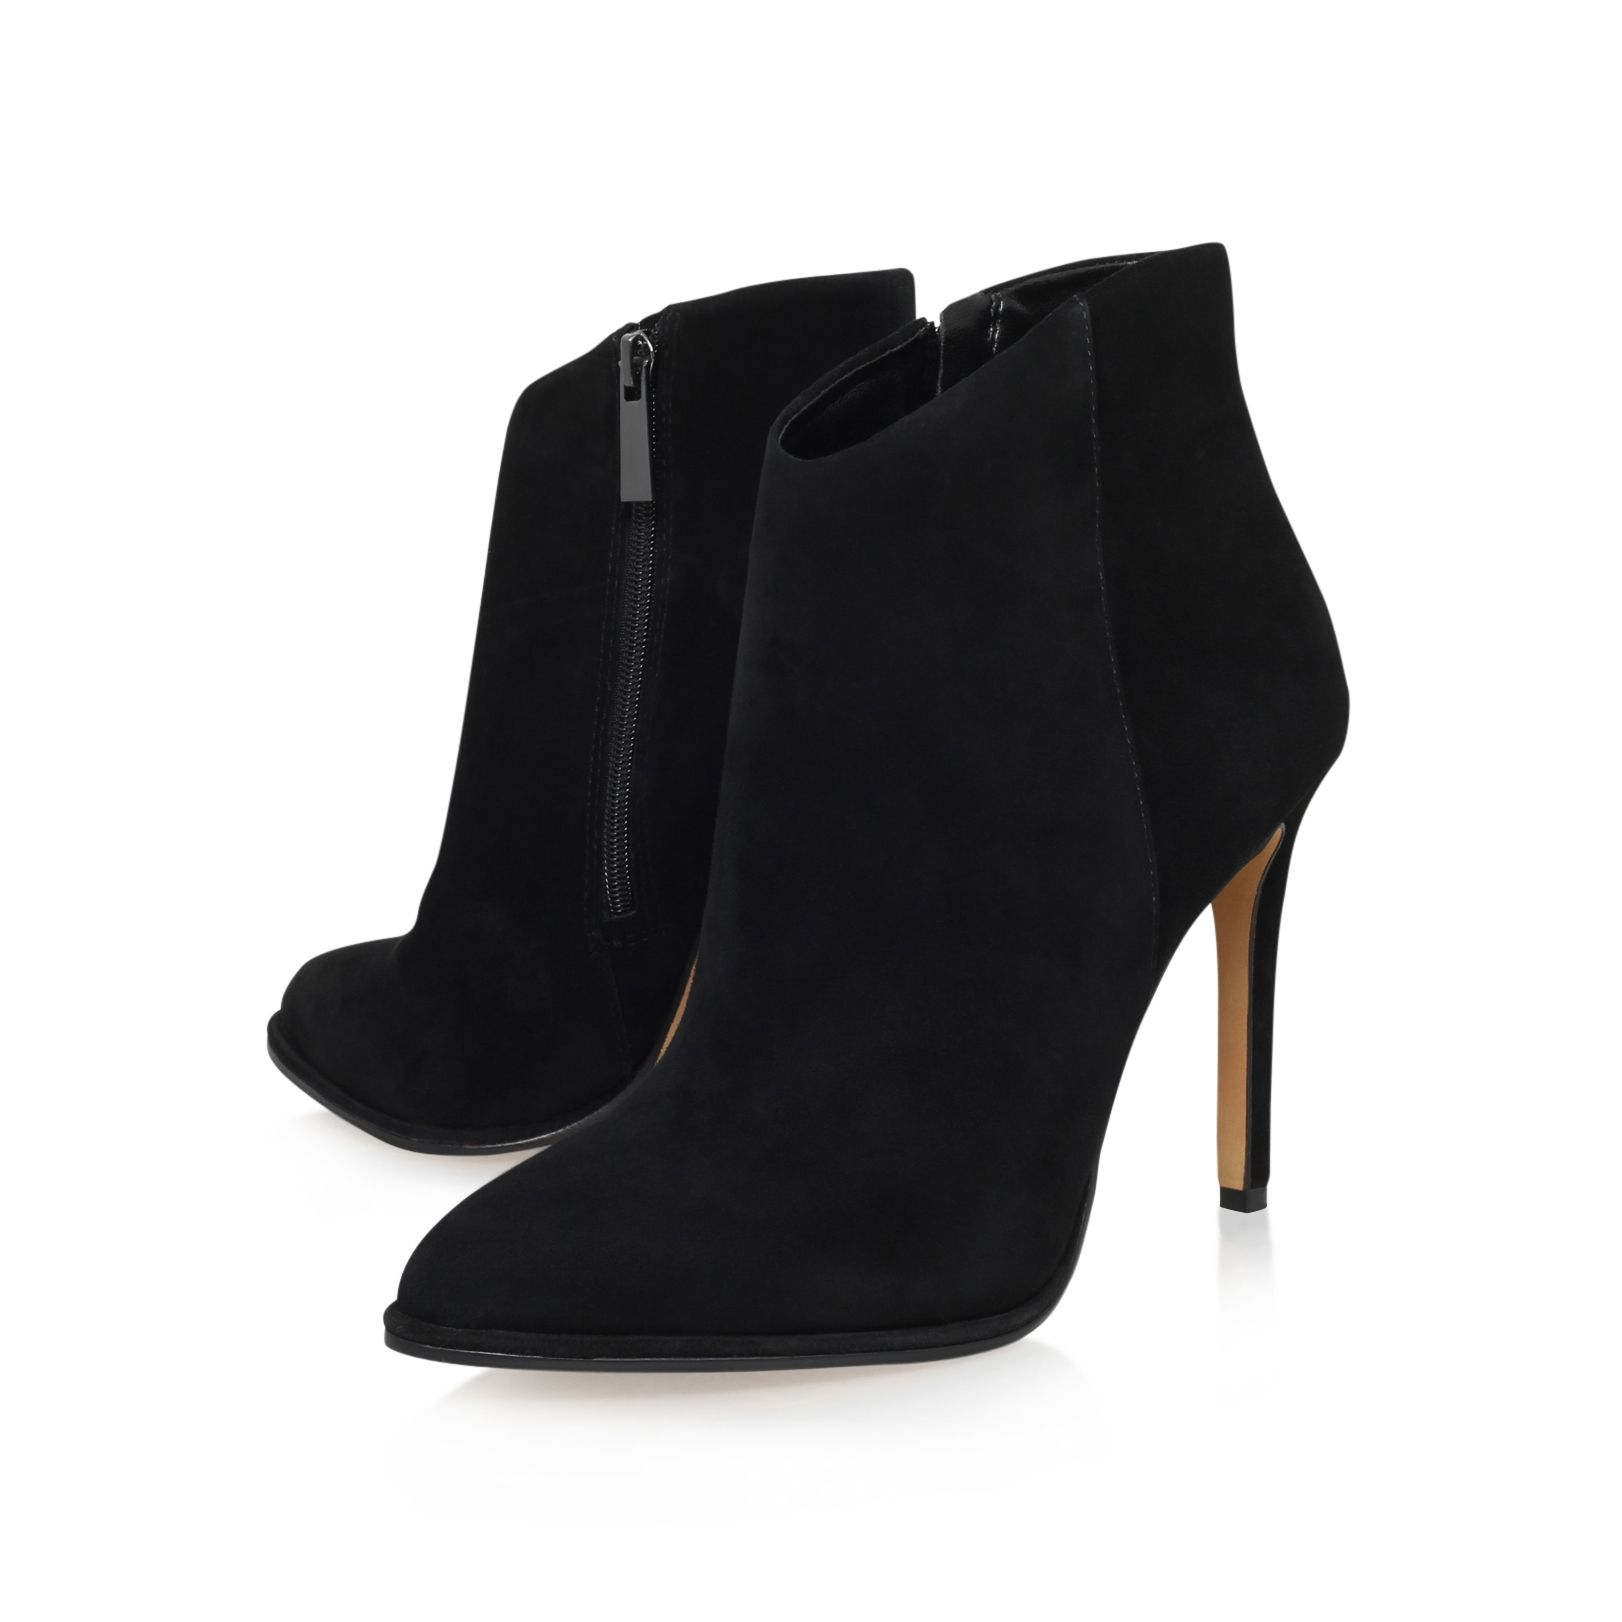 Vince Camuto Lorenza High Heel Ankle Boots In Black Lyst